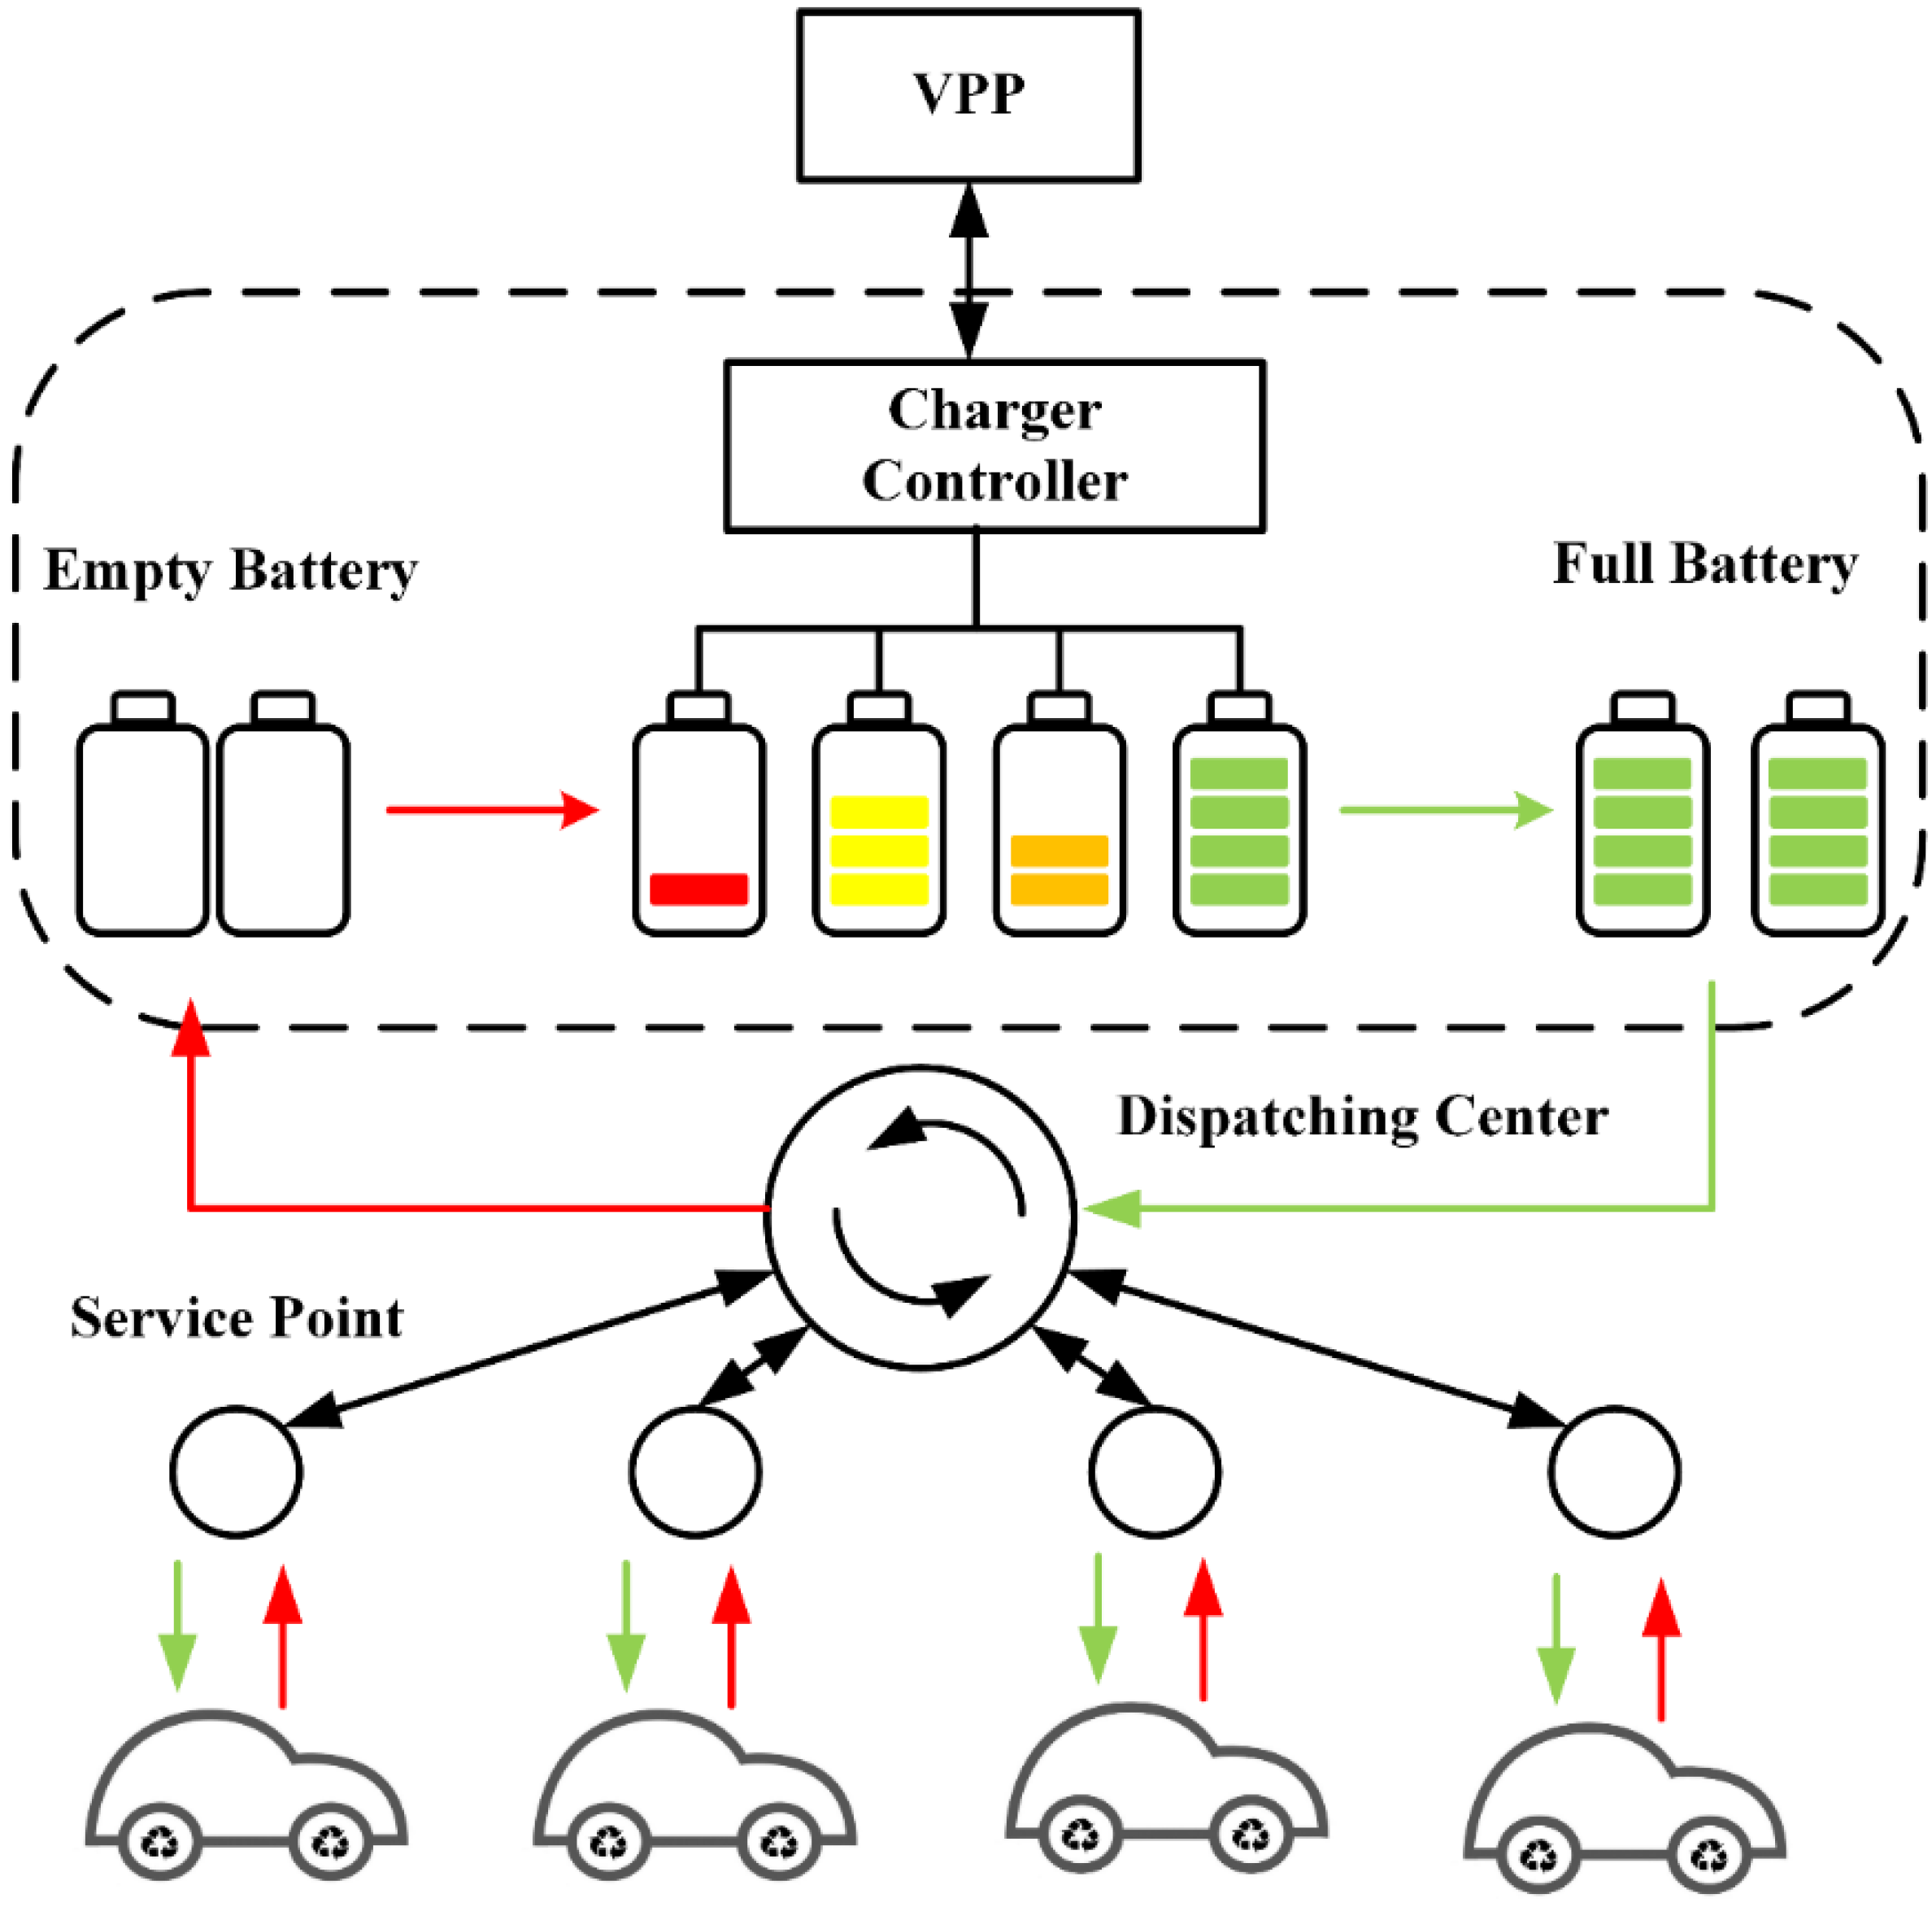 Energies Free Full Text Optimal Dispatch Strategy Of A Virtual Power Plant Line Diagram No